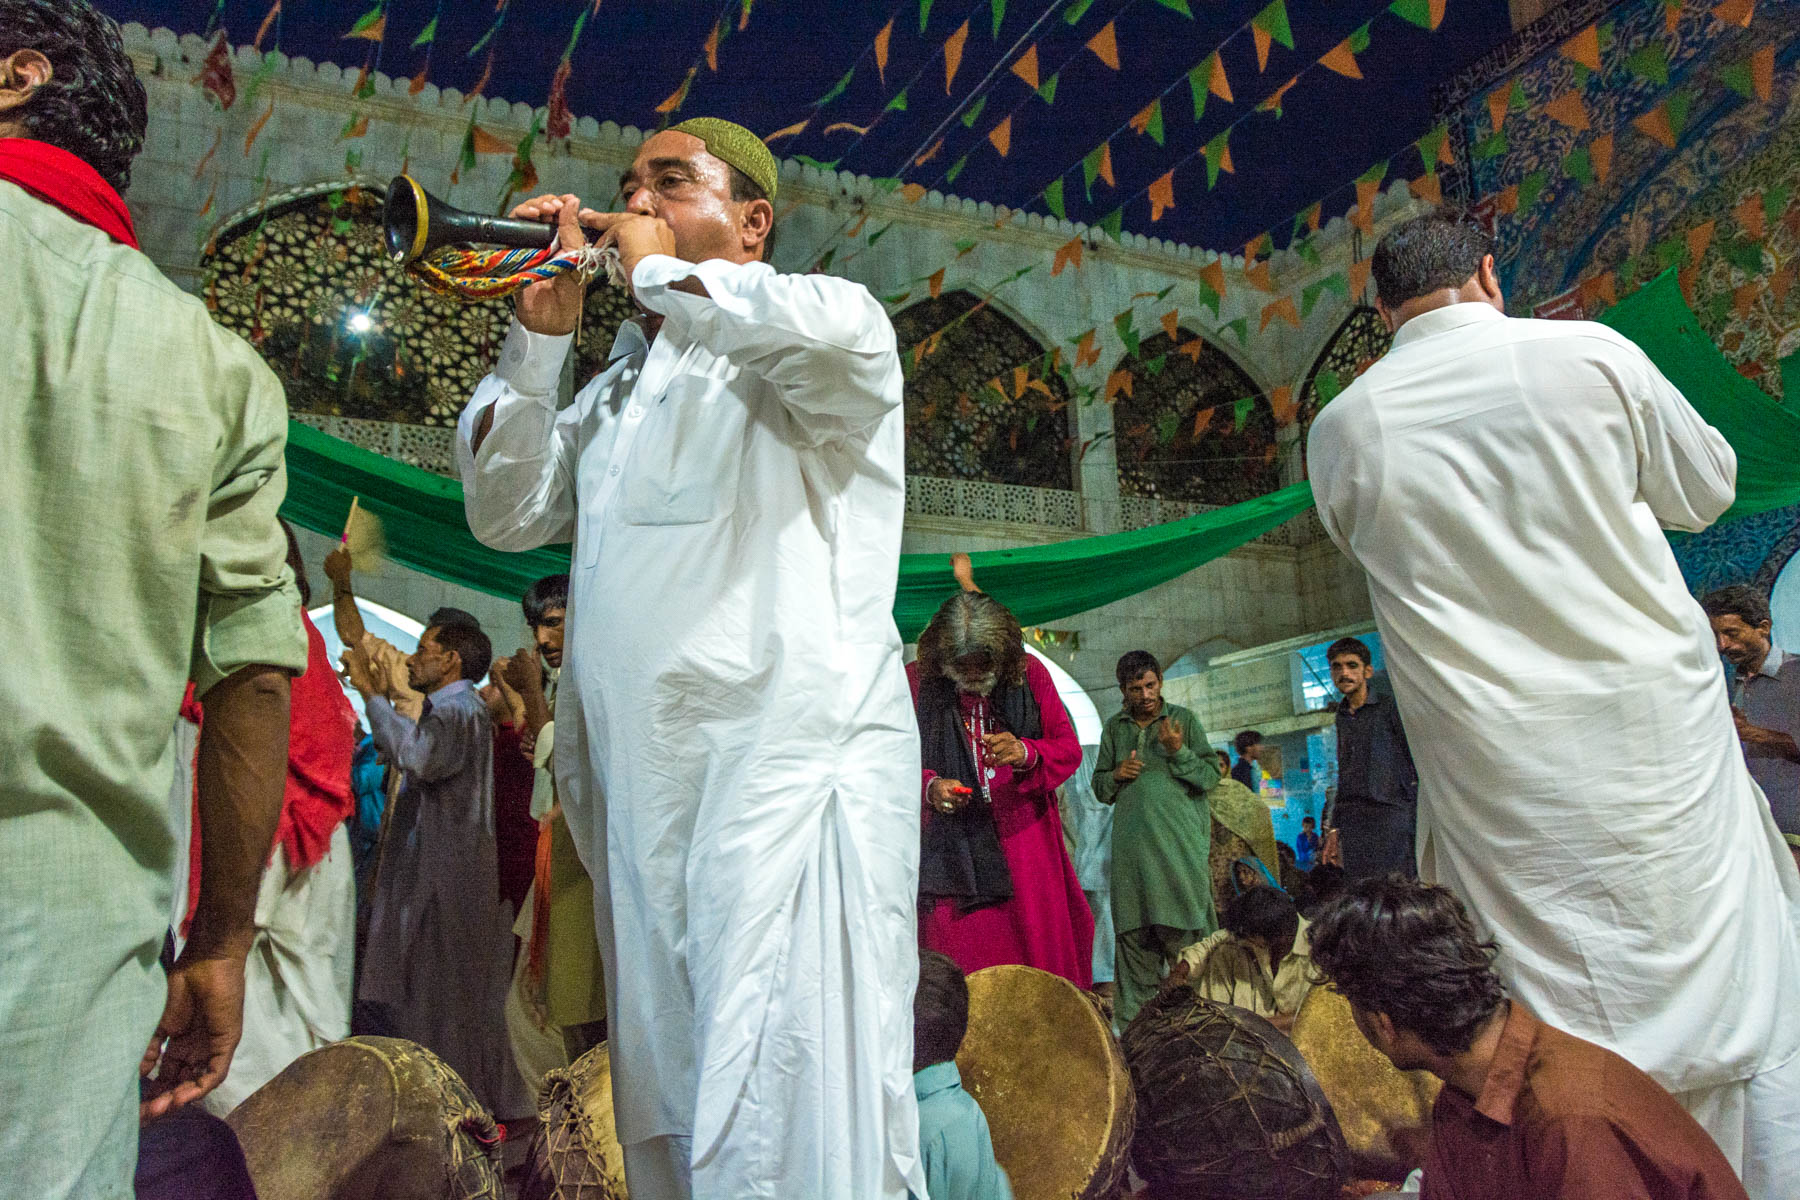 A horn player during sufi dancing at the Lal Shahbaz Qalandar shrine in Sehwan, Pakistan